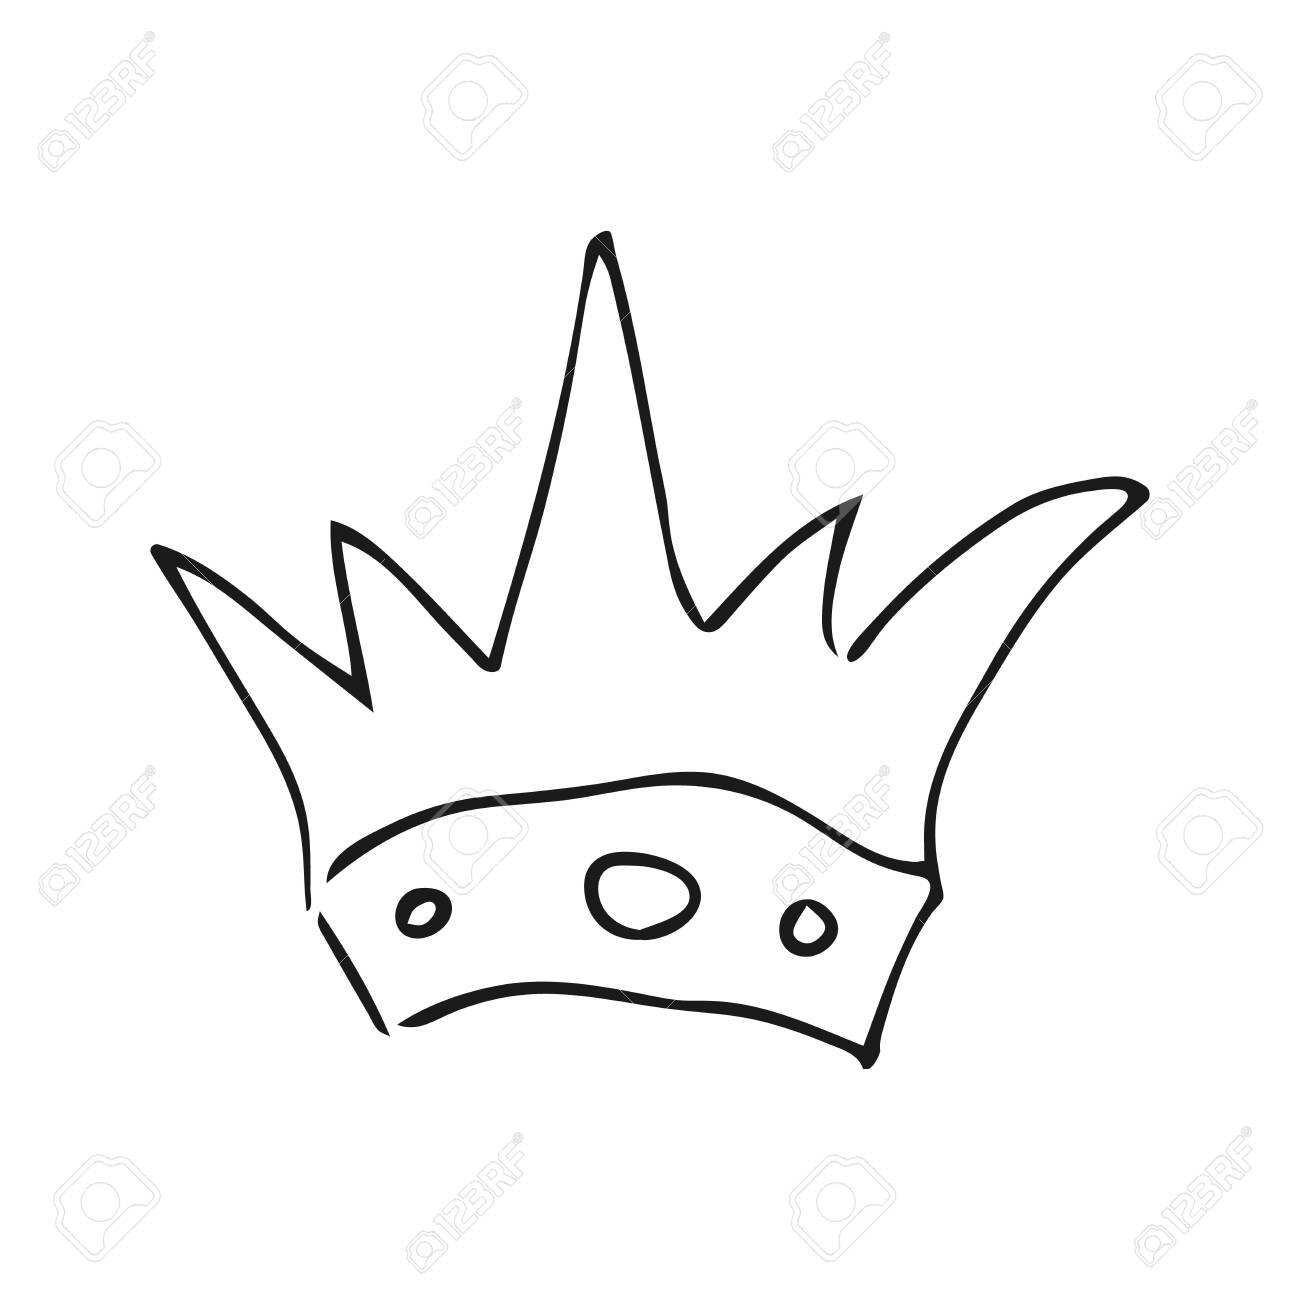 Hand Drawn Crown Simple Graffiti Sketch Queen Or King Crown Royalty Free Cliparts Vectors And Stock Illustration Image 127735063 Let us decorate our princess crown drawing too. 123rf com